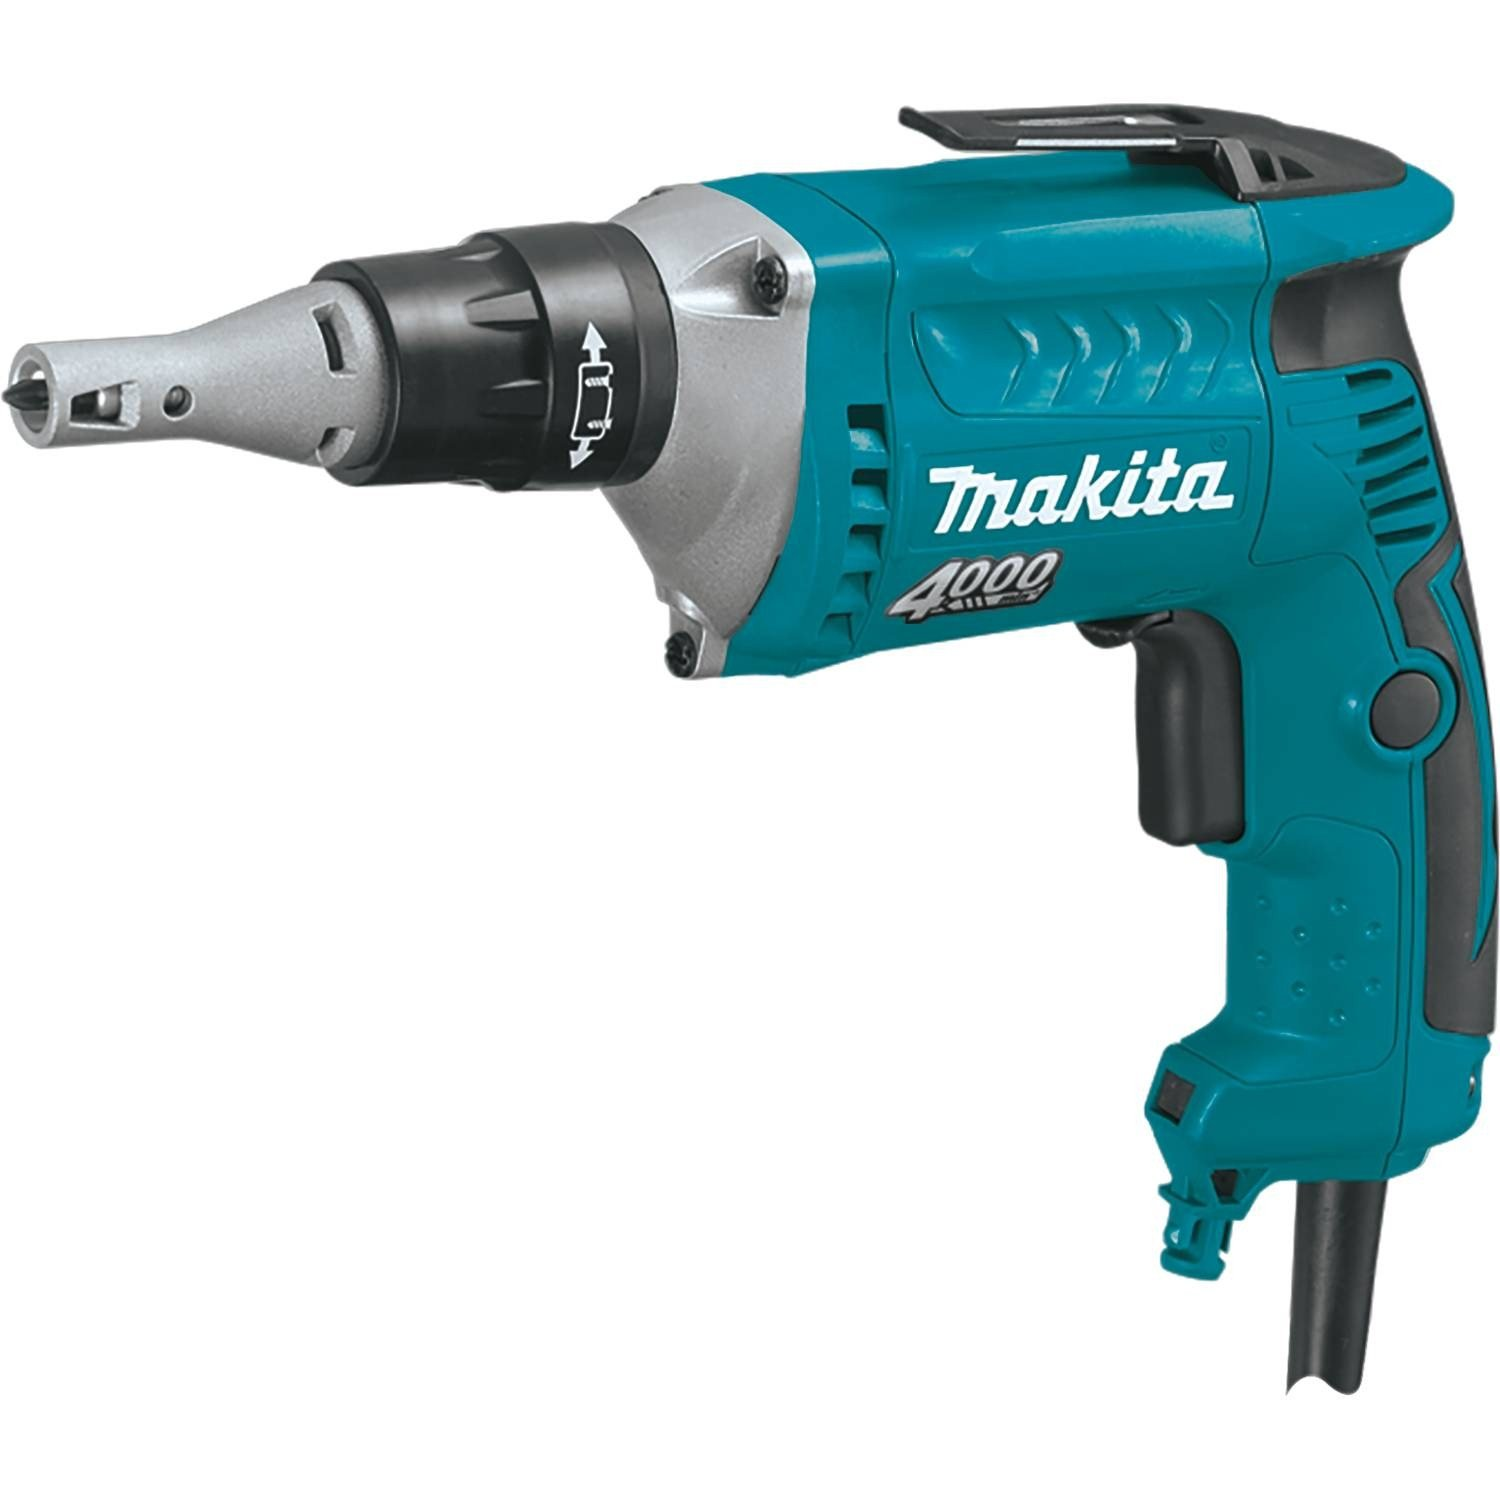 Makita FS4200 6 Amp Drywall Screwdriver